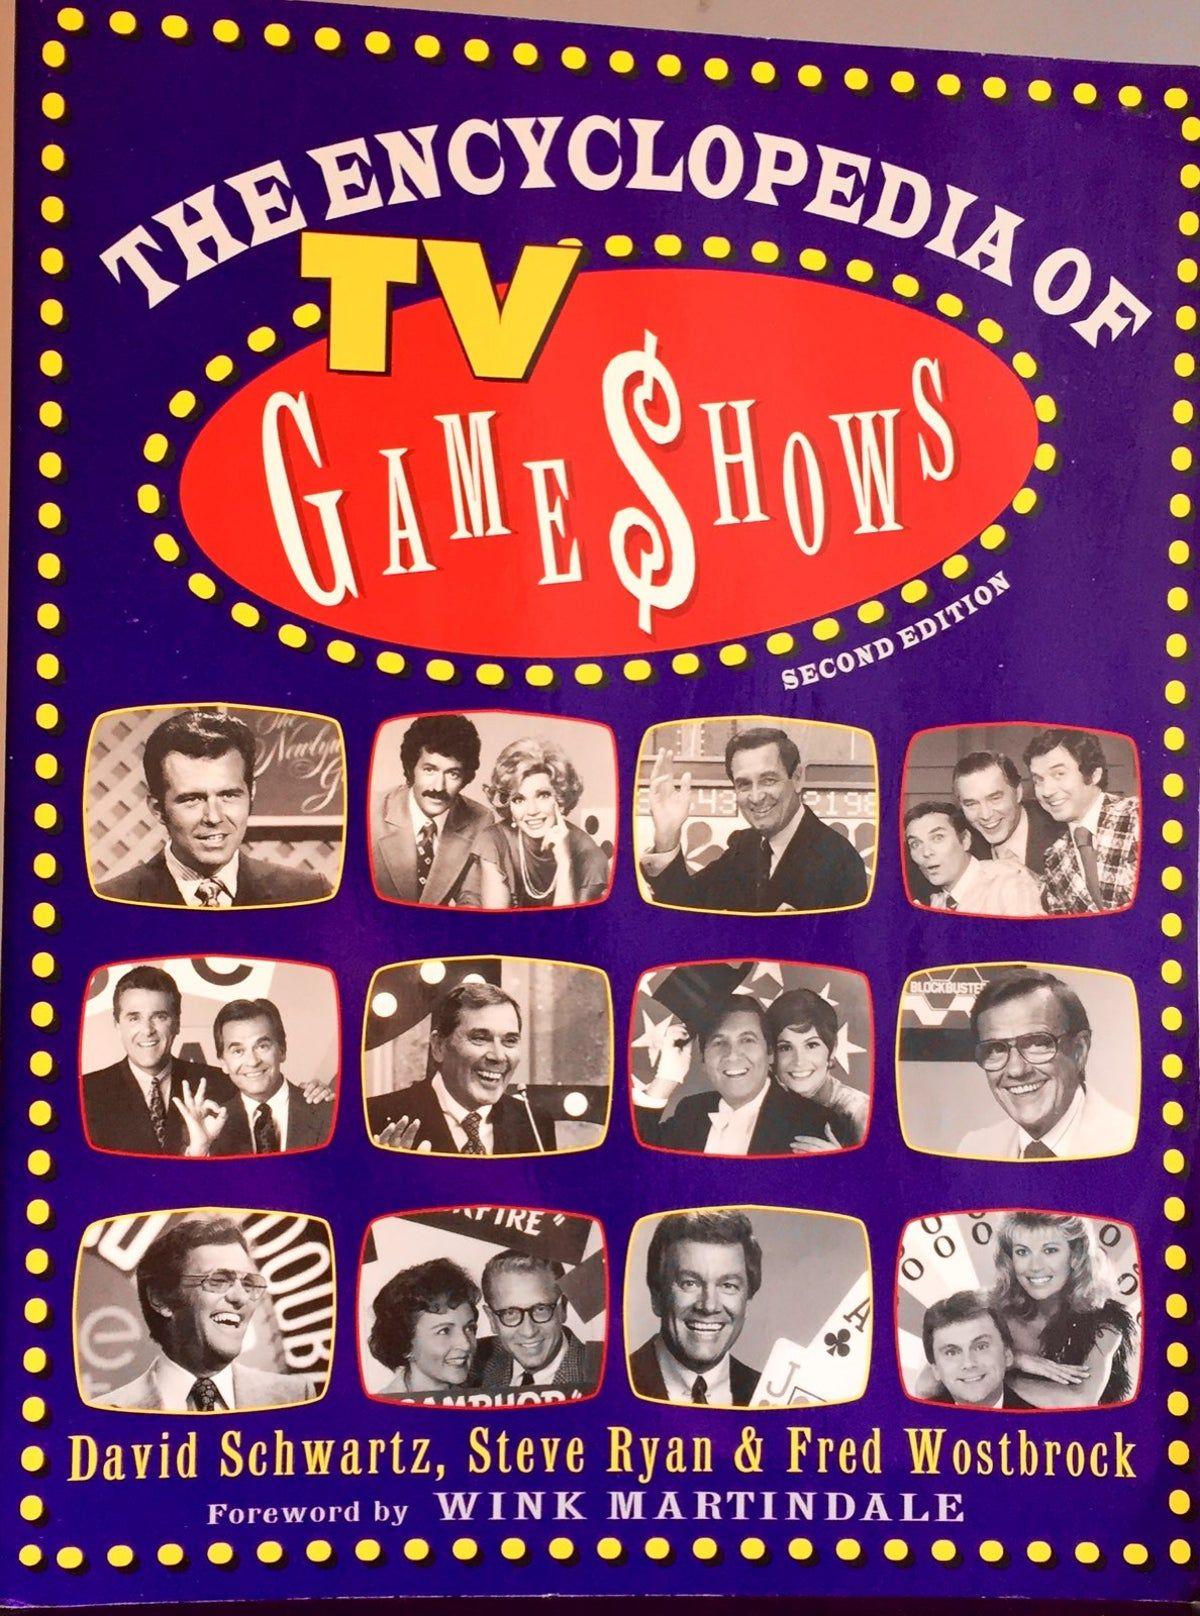 Pin by Michael Bacon on Game Shows in 2020 Game show, Tv